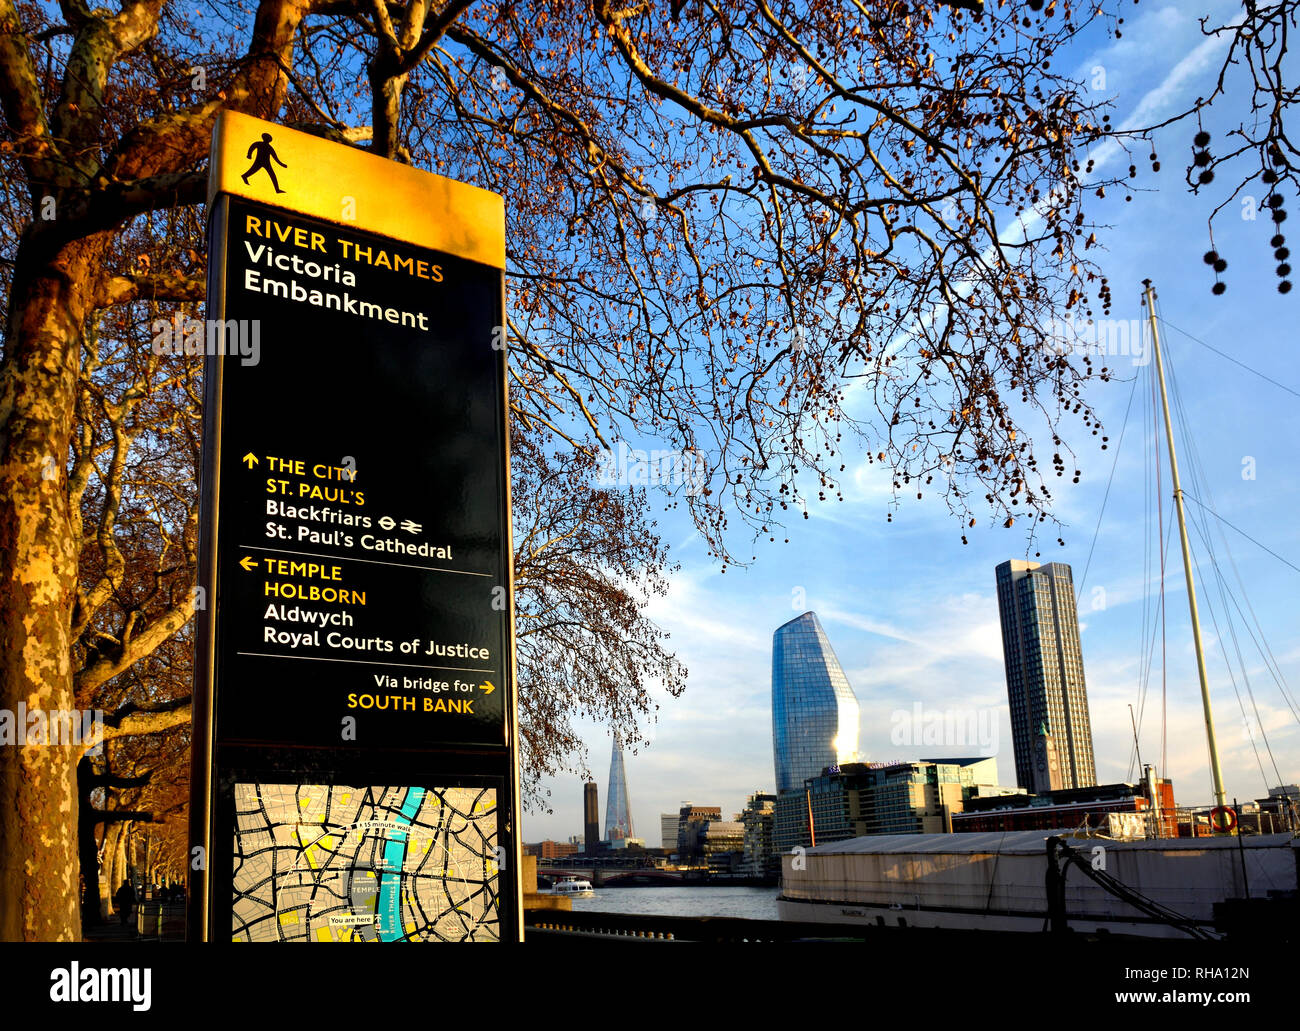 London, England, UK. River Thames, tourist information map and buildings on the South Bank seen from the Victoria Embankment. - Stock Image